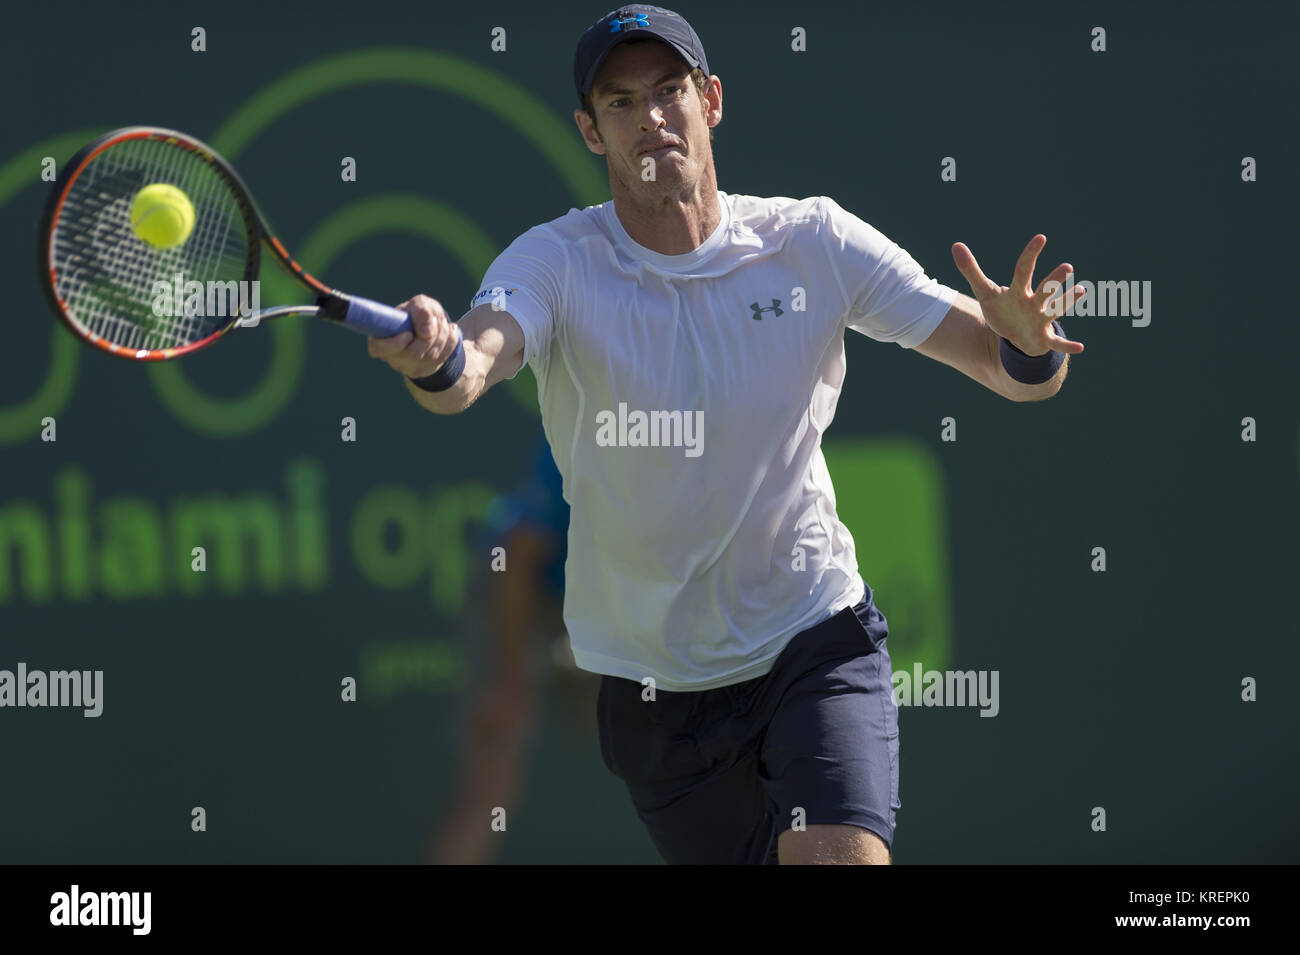 KEY BISCAYNE, FL - MARCH 31: Andy Murray of Great Britain celebrates match point and his 500th ATP Tour victory - Stock Image